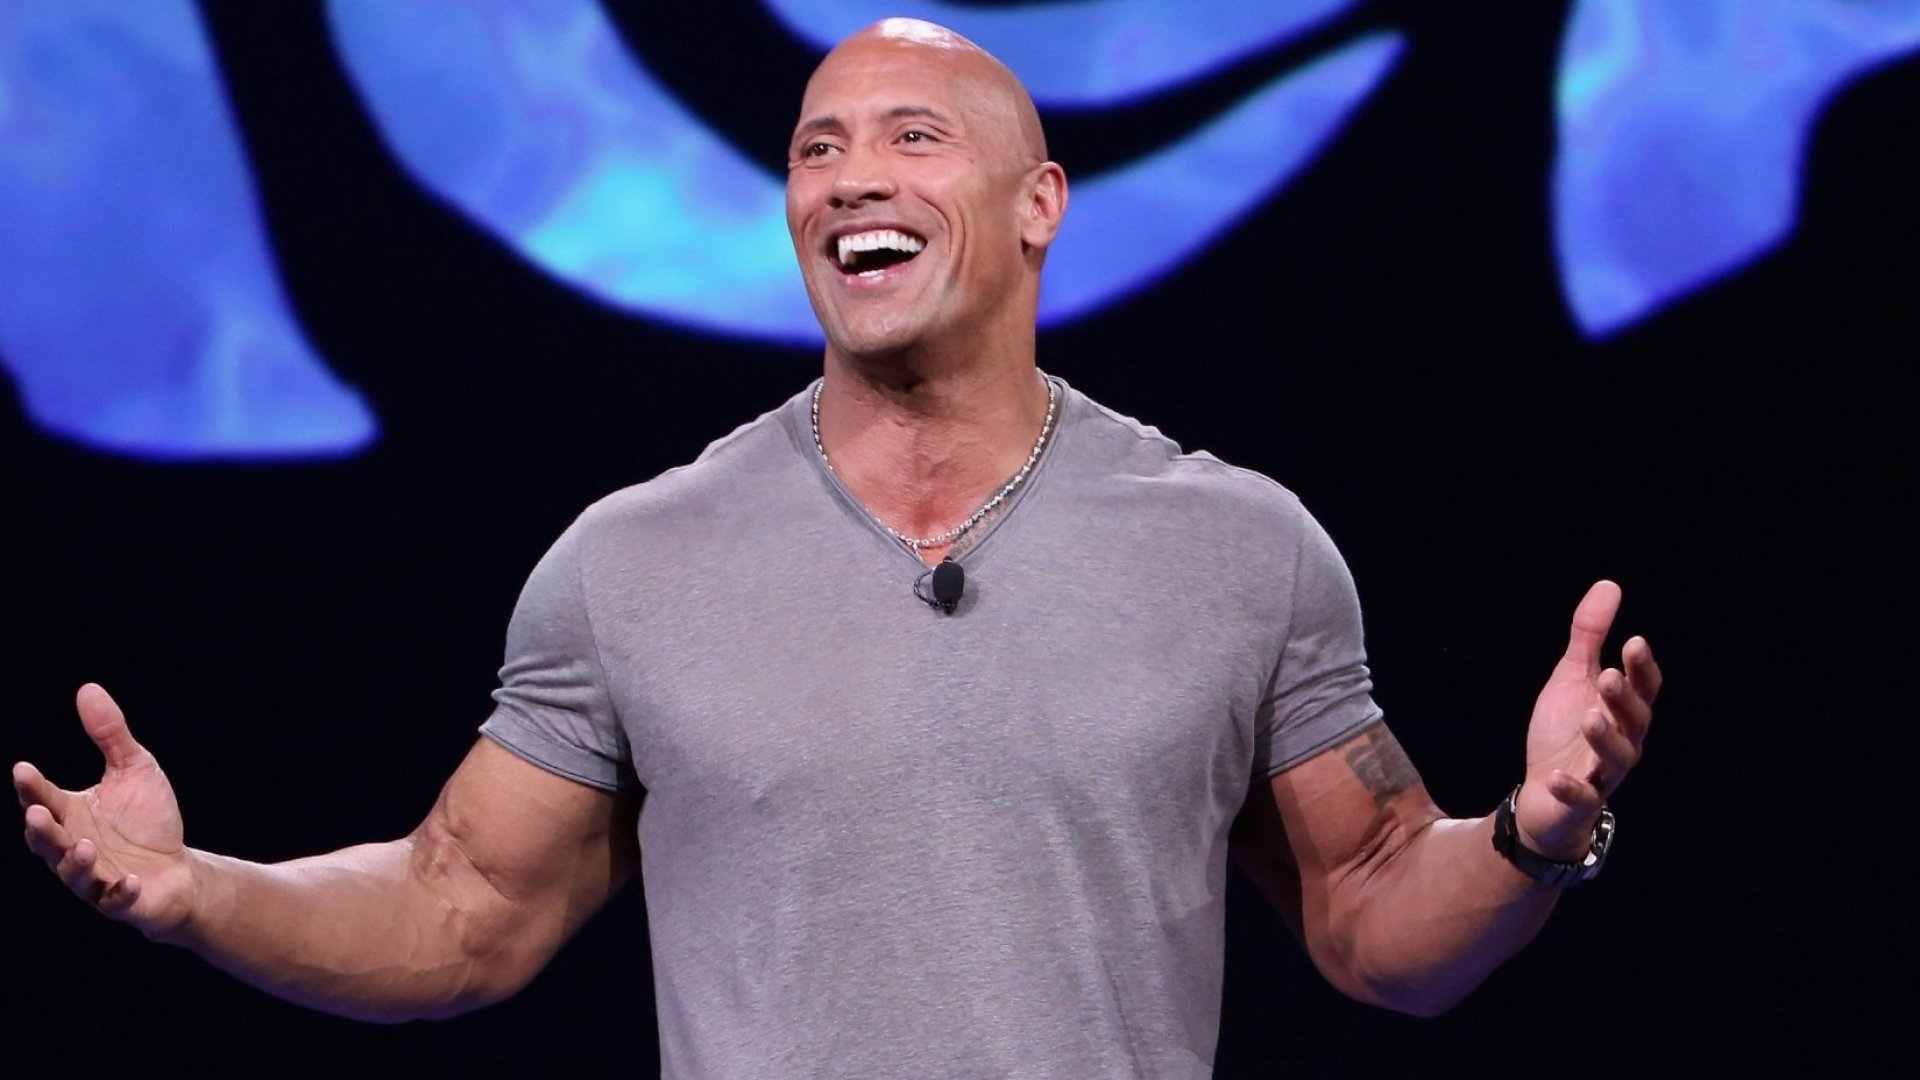 How Dwayne 'The Rock' Johnson Overcame a 'Shattering' Career Setback